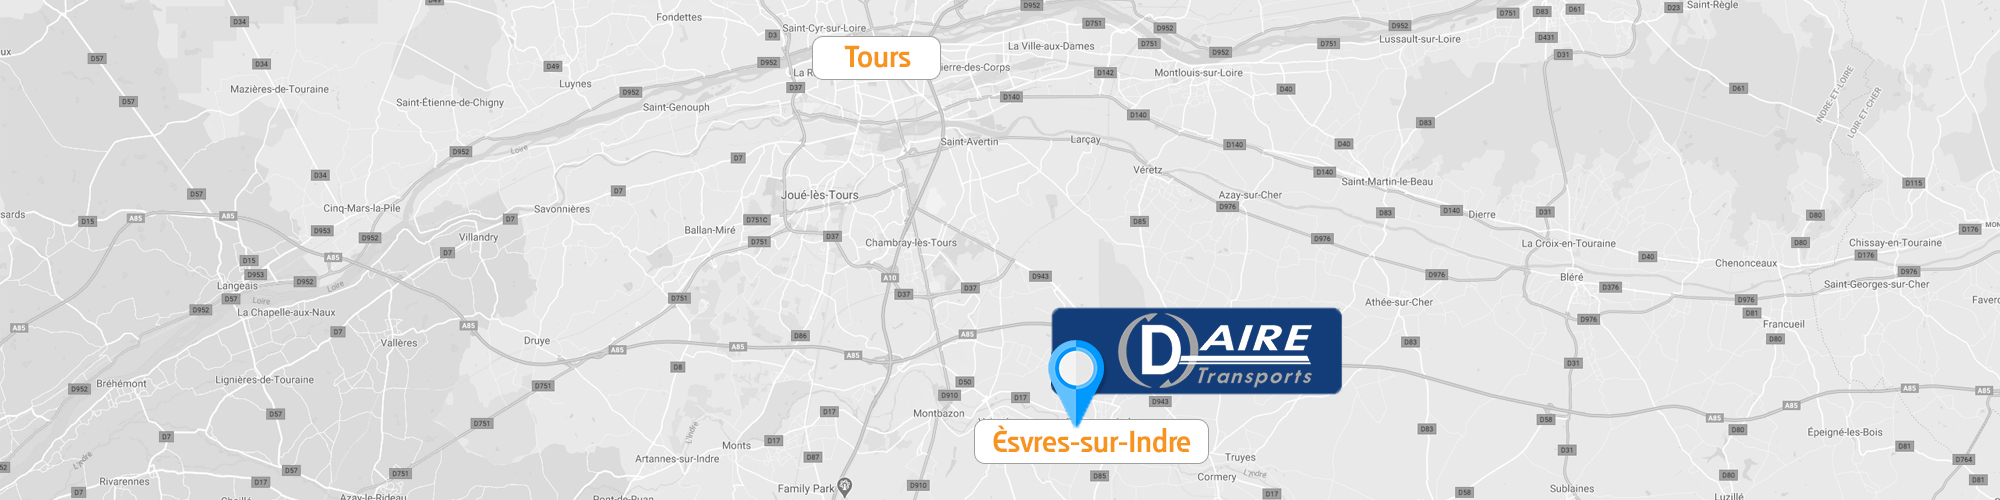 tcda-page-contact-map-transports-daire